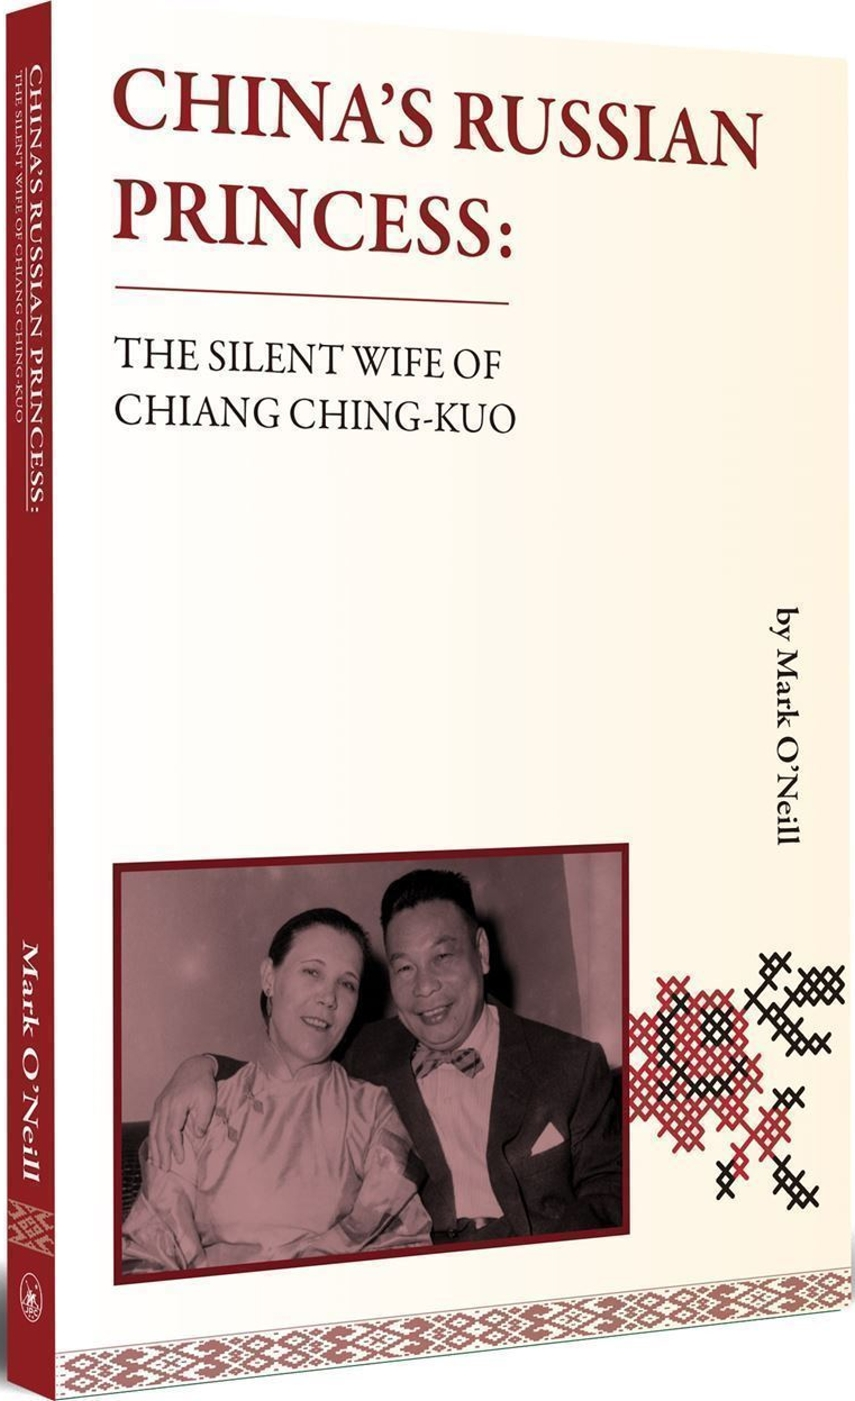 China's Russian Princess: the Silent Wife of Chian